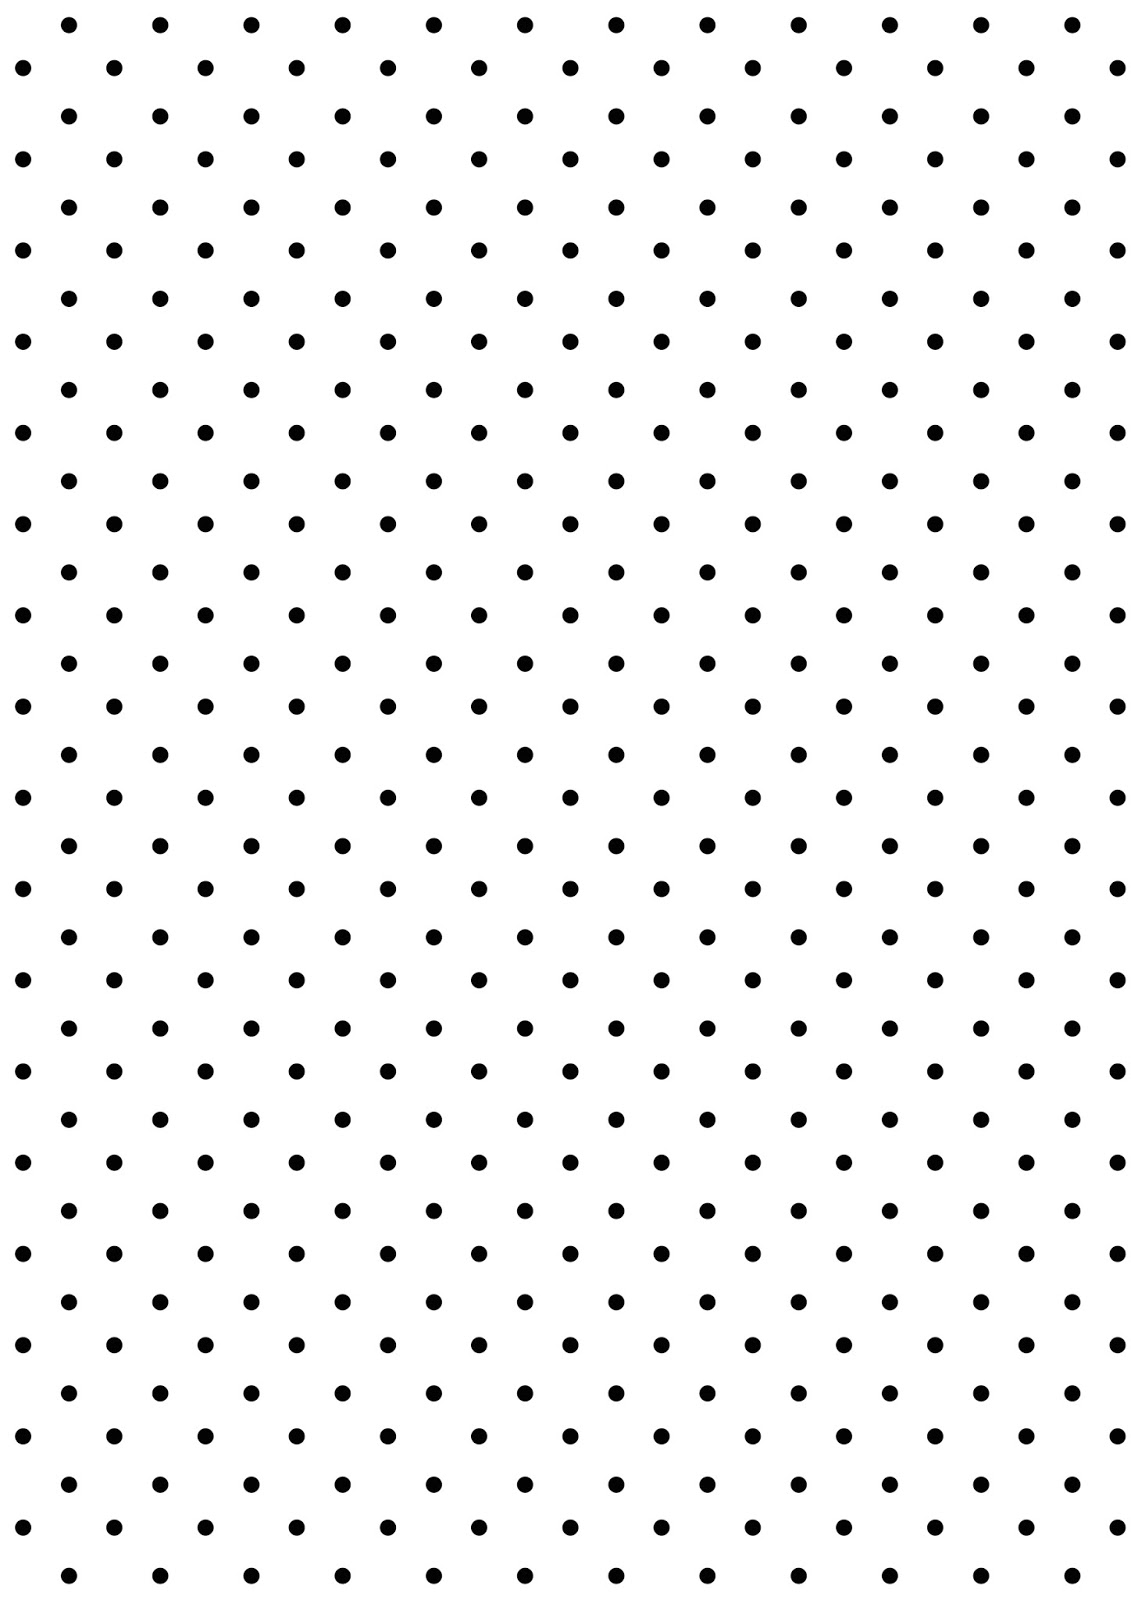 Black and white polka dot pattern - photo#9